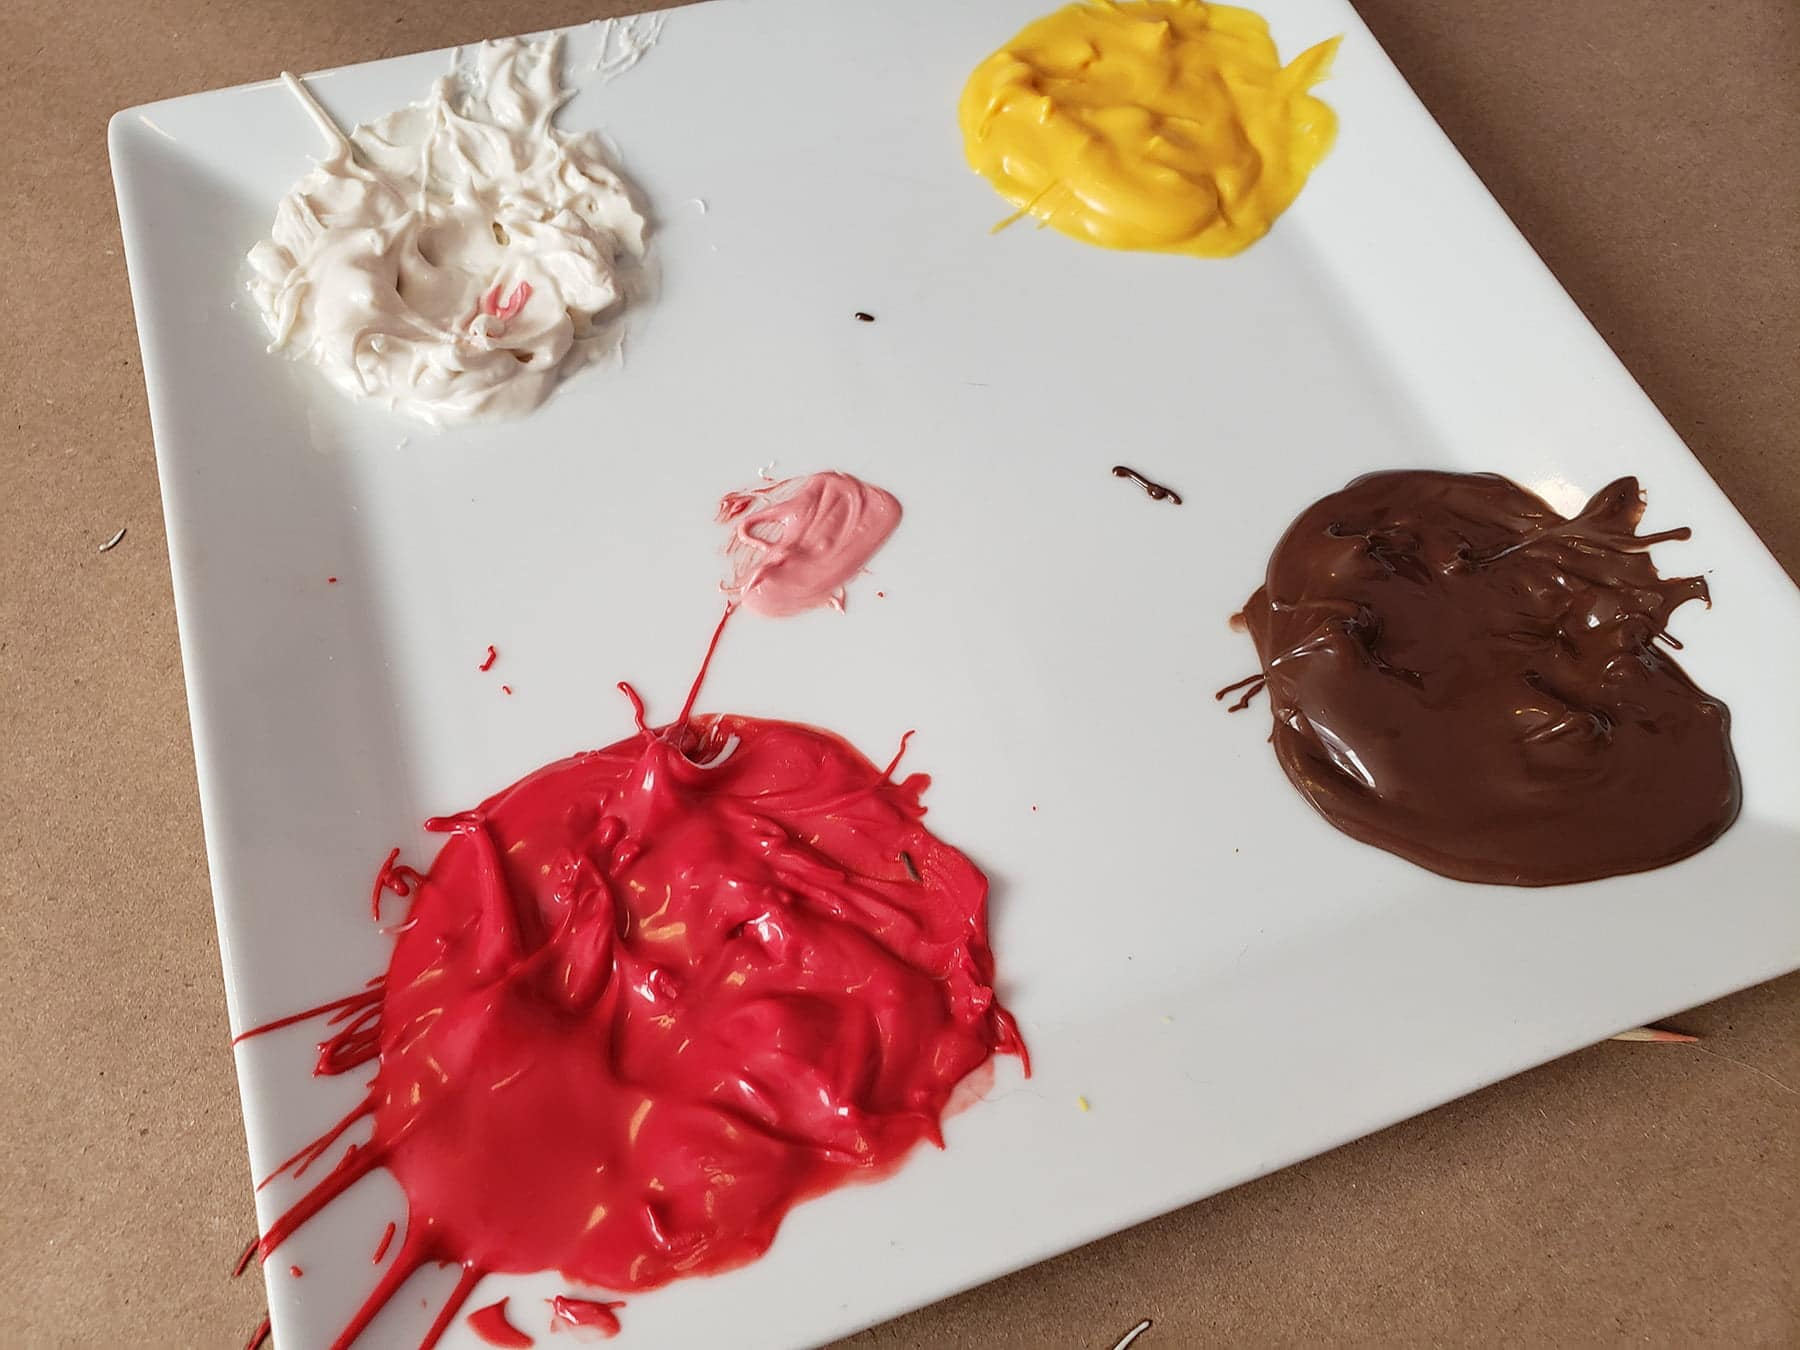 The plate of melted candy shows a bit of red and white having been mixed together to form pink.